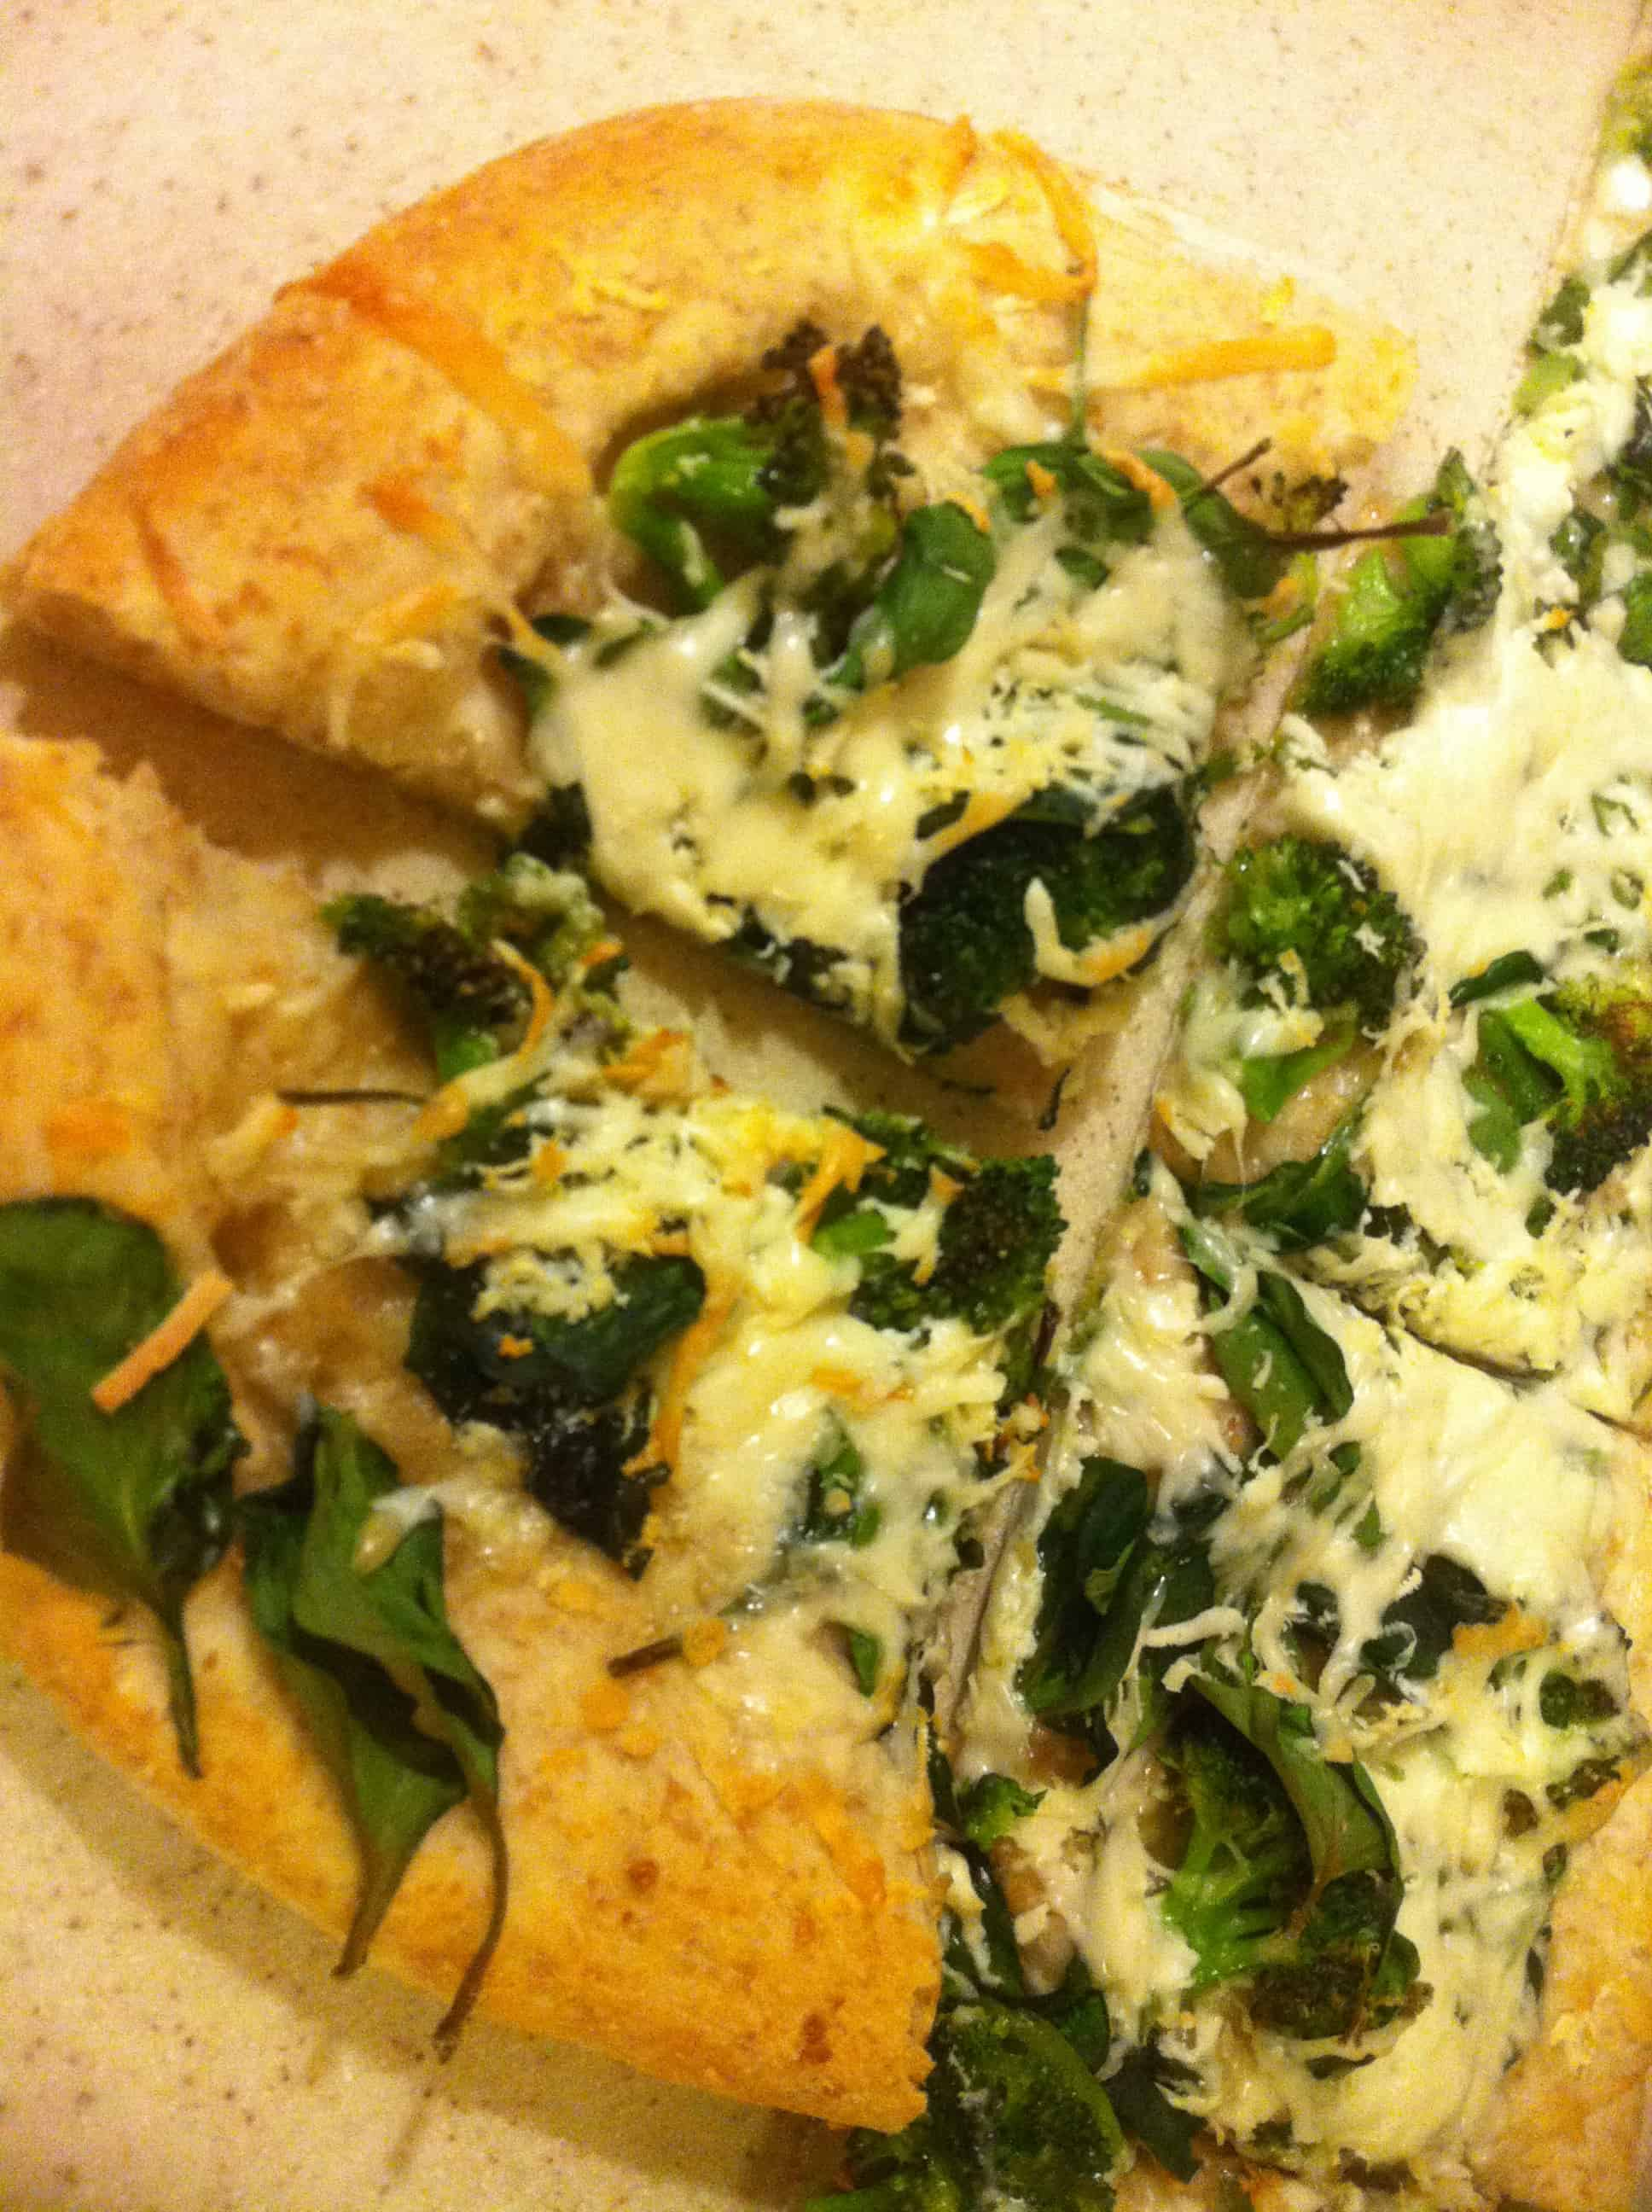 Homemade spinach, broccoli, and goat cheese pizza